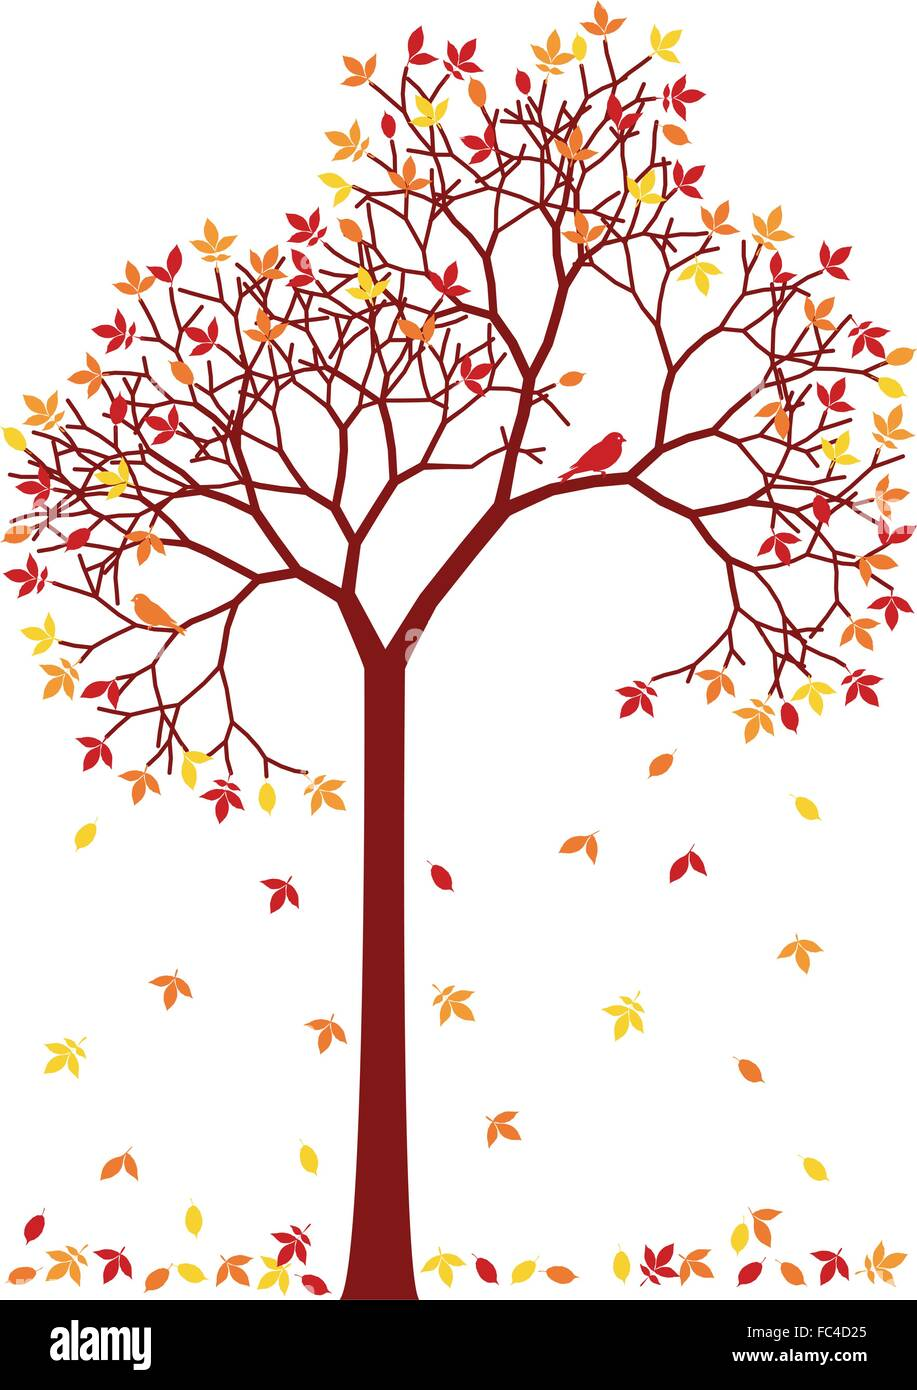 Autumn tree with falling leaves, vector illustration - Stock Image